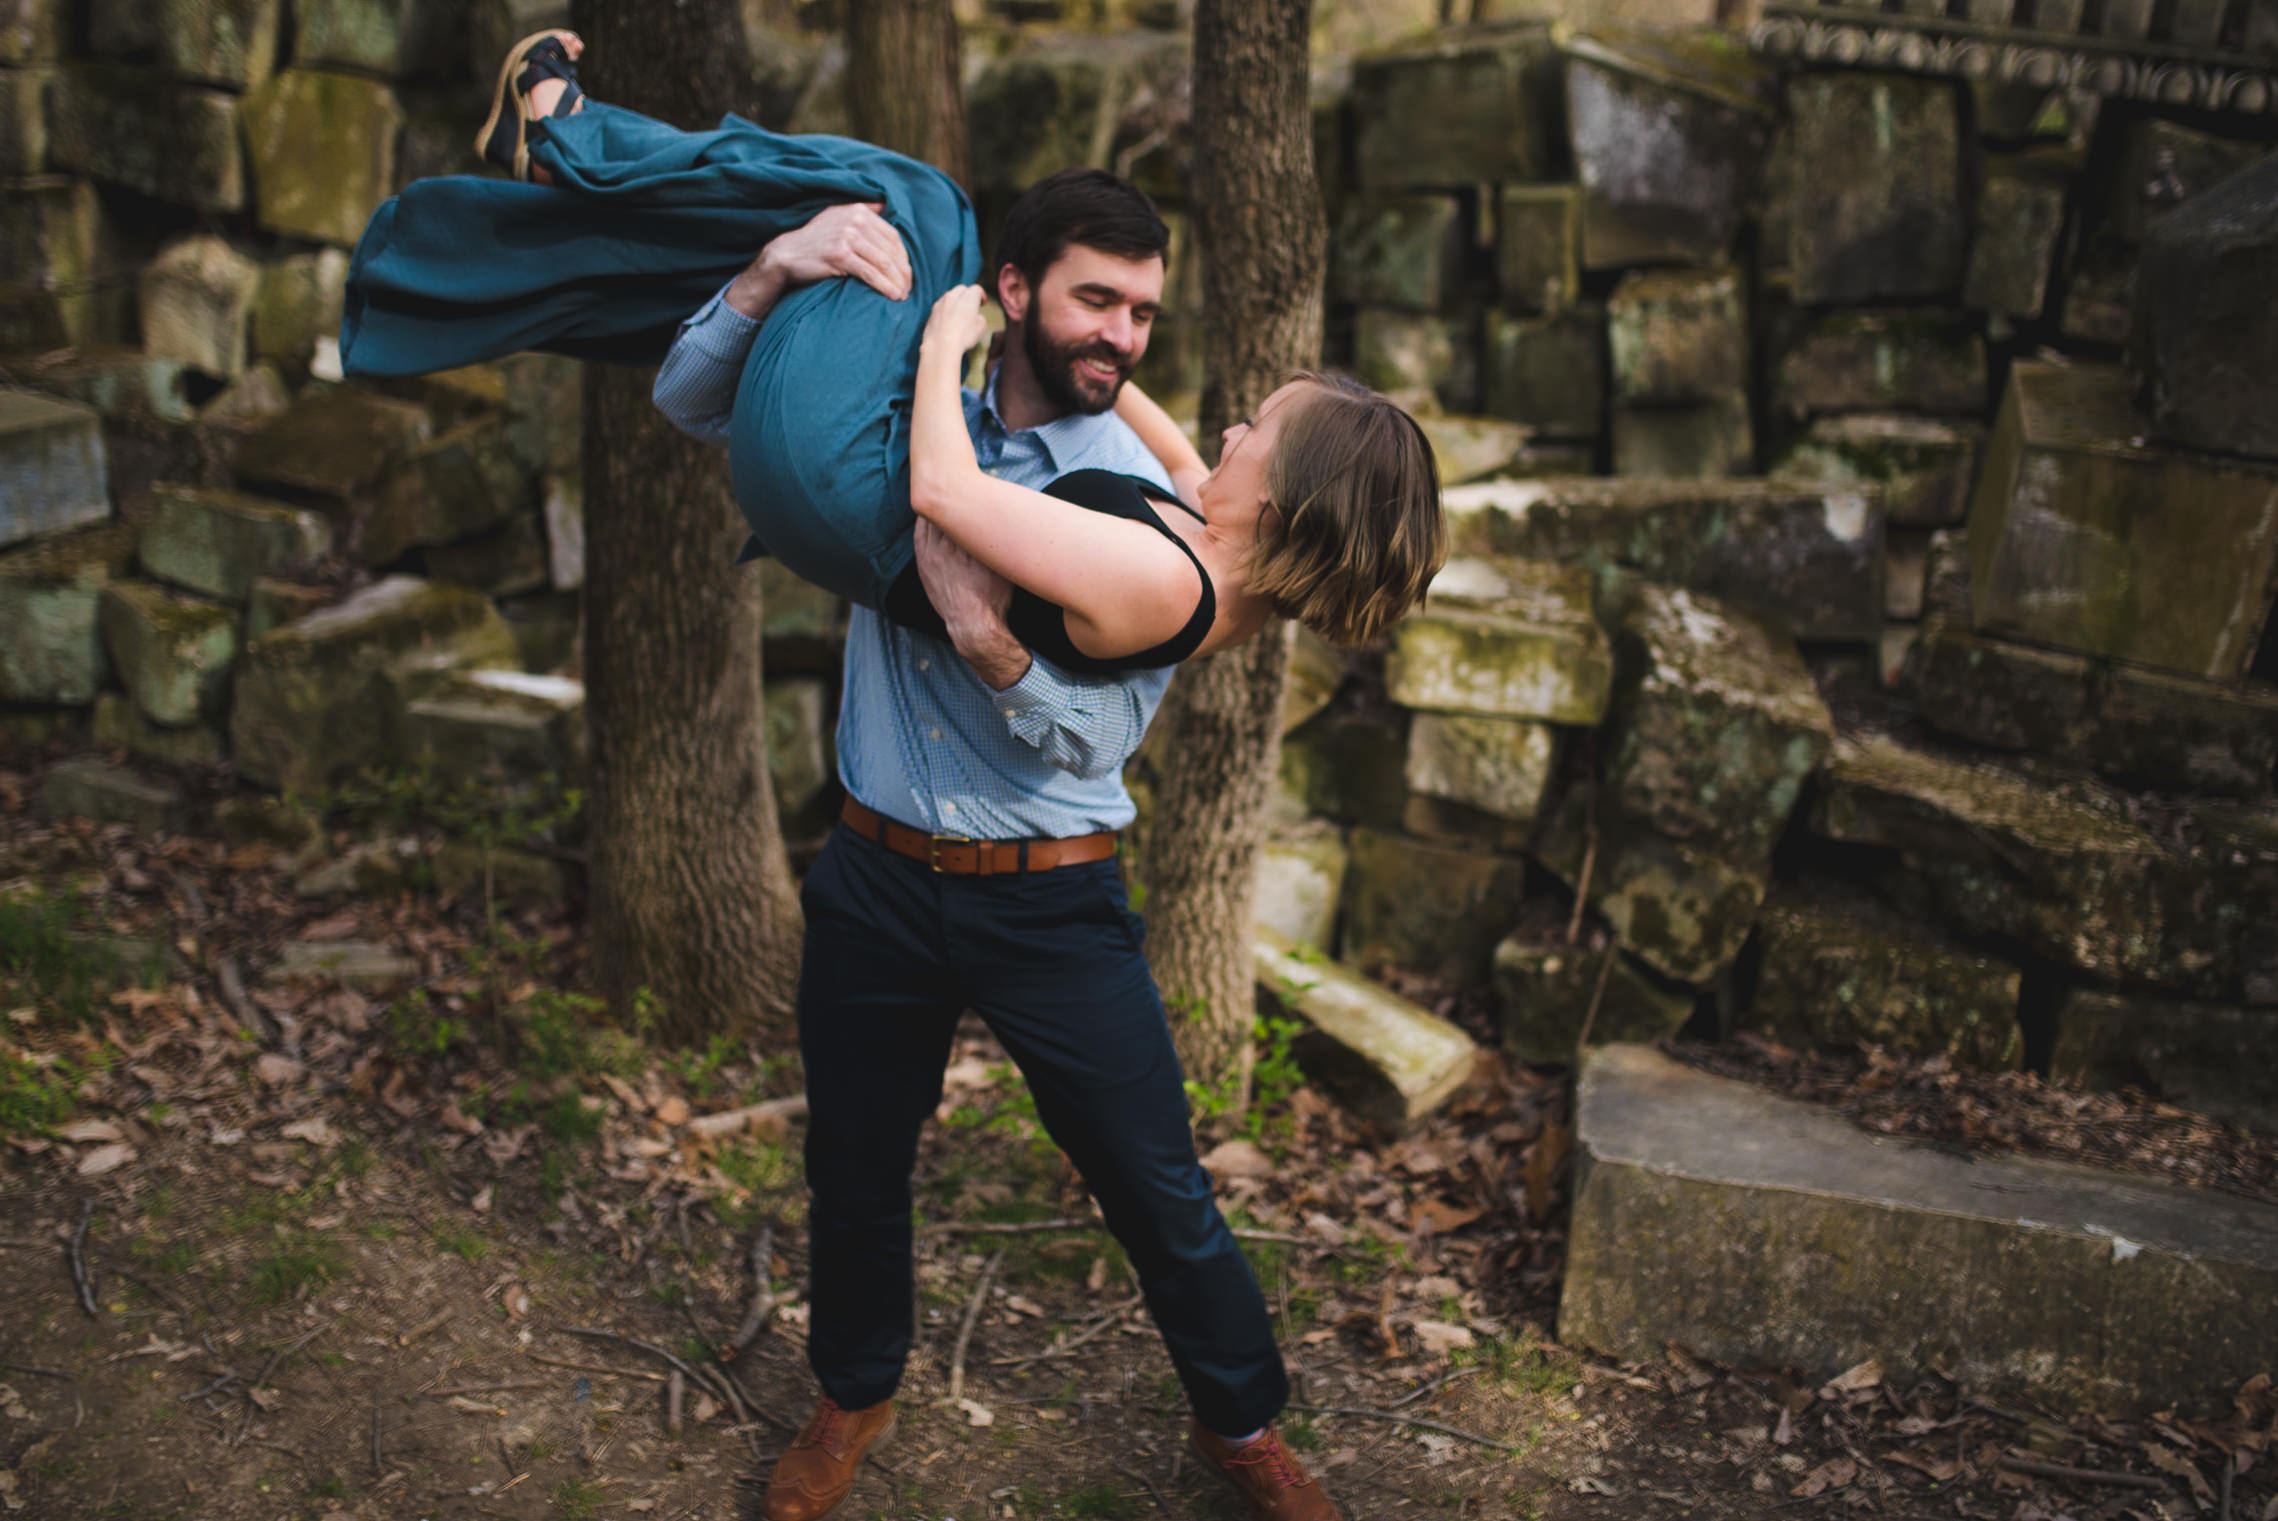 Capitol Stone Yard Engagement Session-3.jpg